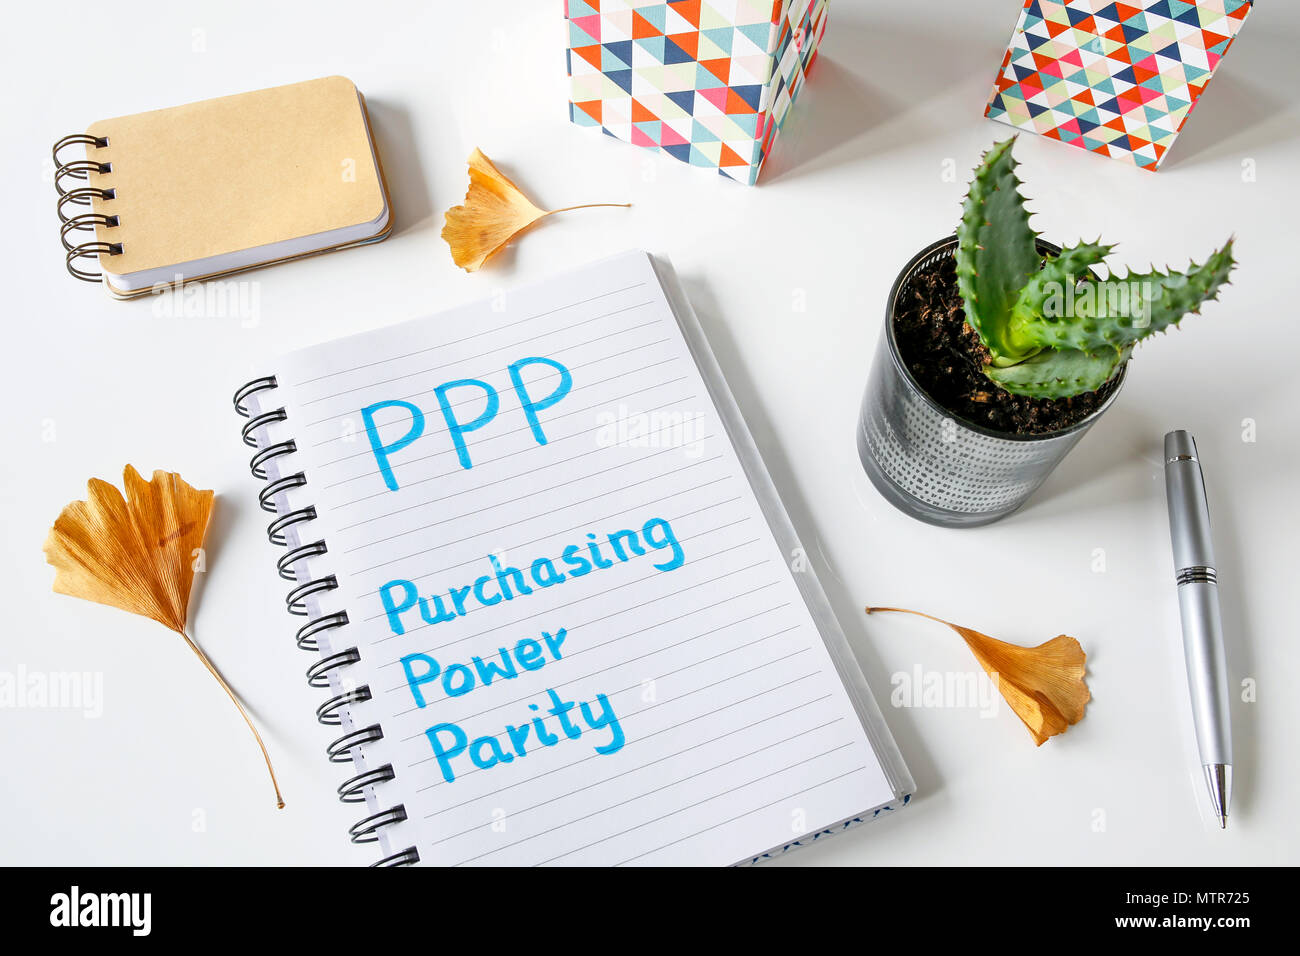 PPP Purchasing Power Parity written in a notebook on white table - Stock Image